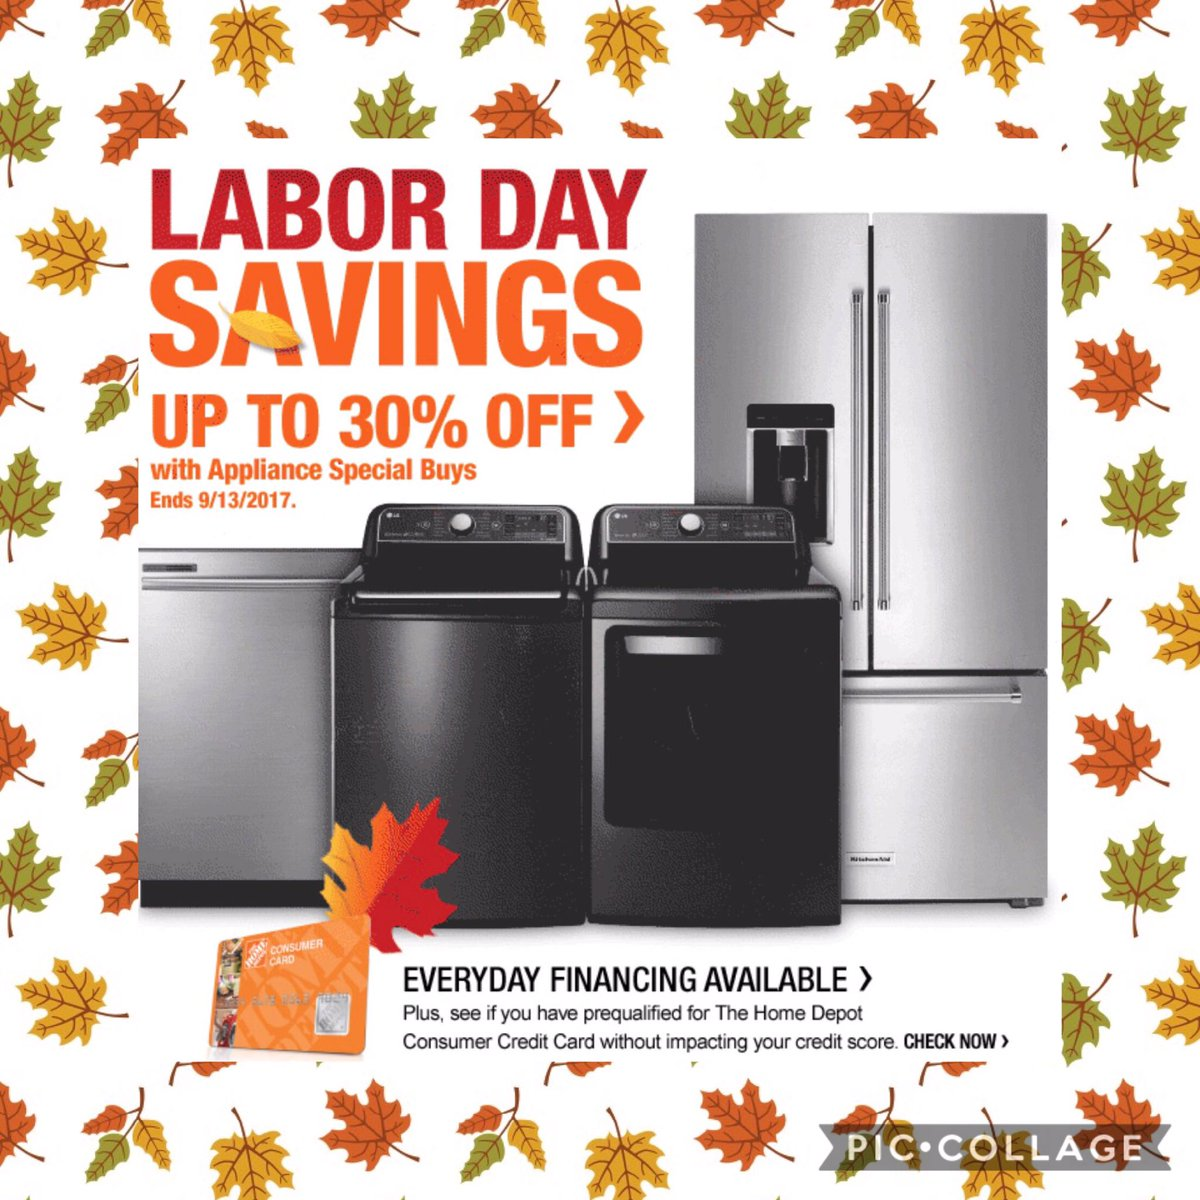 Home Depot Amarillo On Twitter Labor Day Is Here Savings